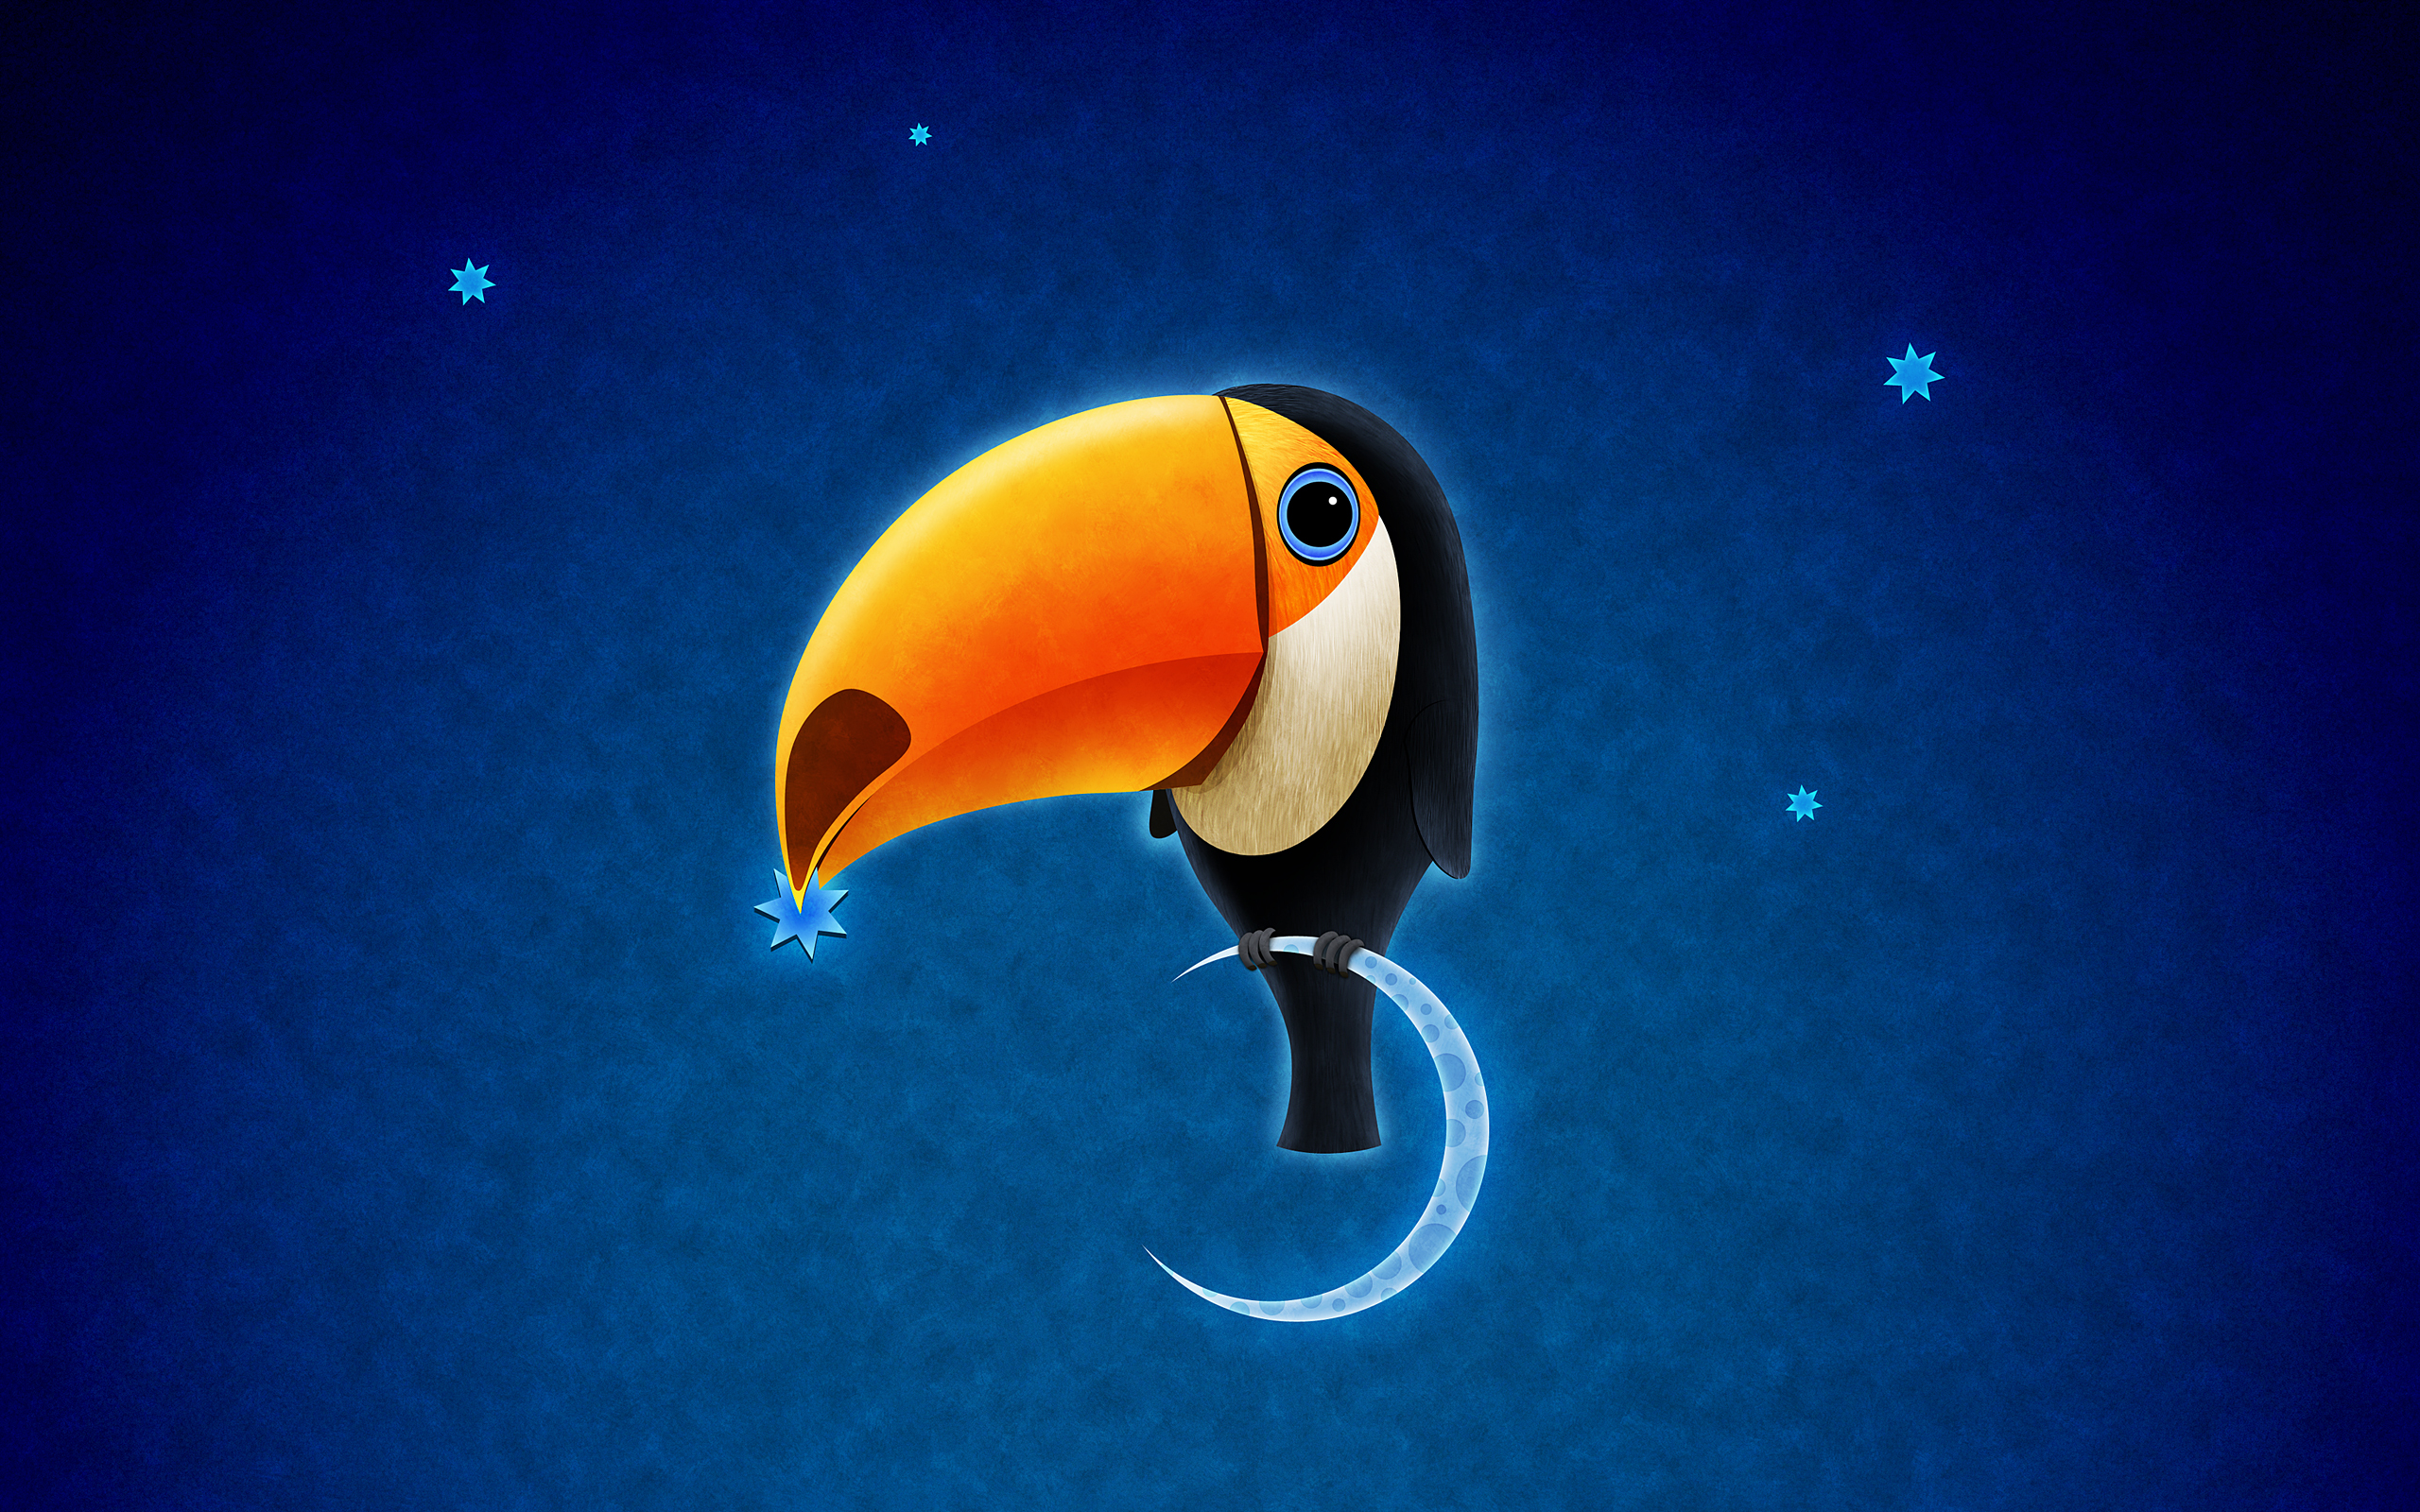 Toucan Bird 286.58 Kb